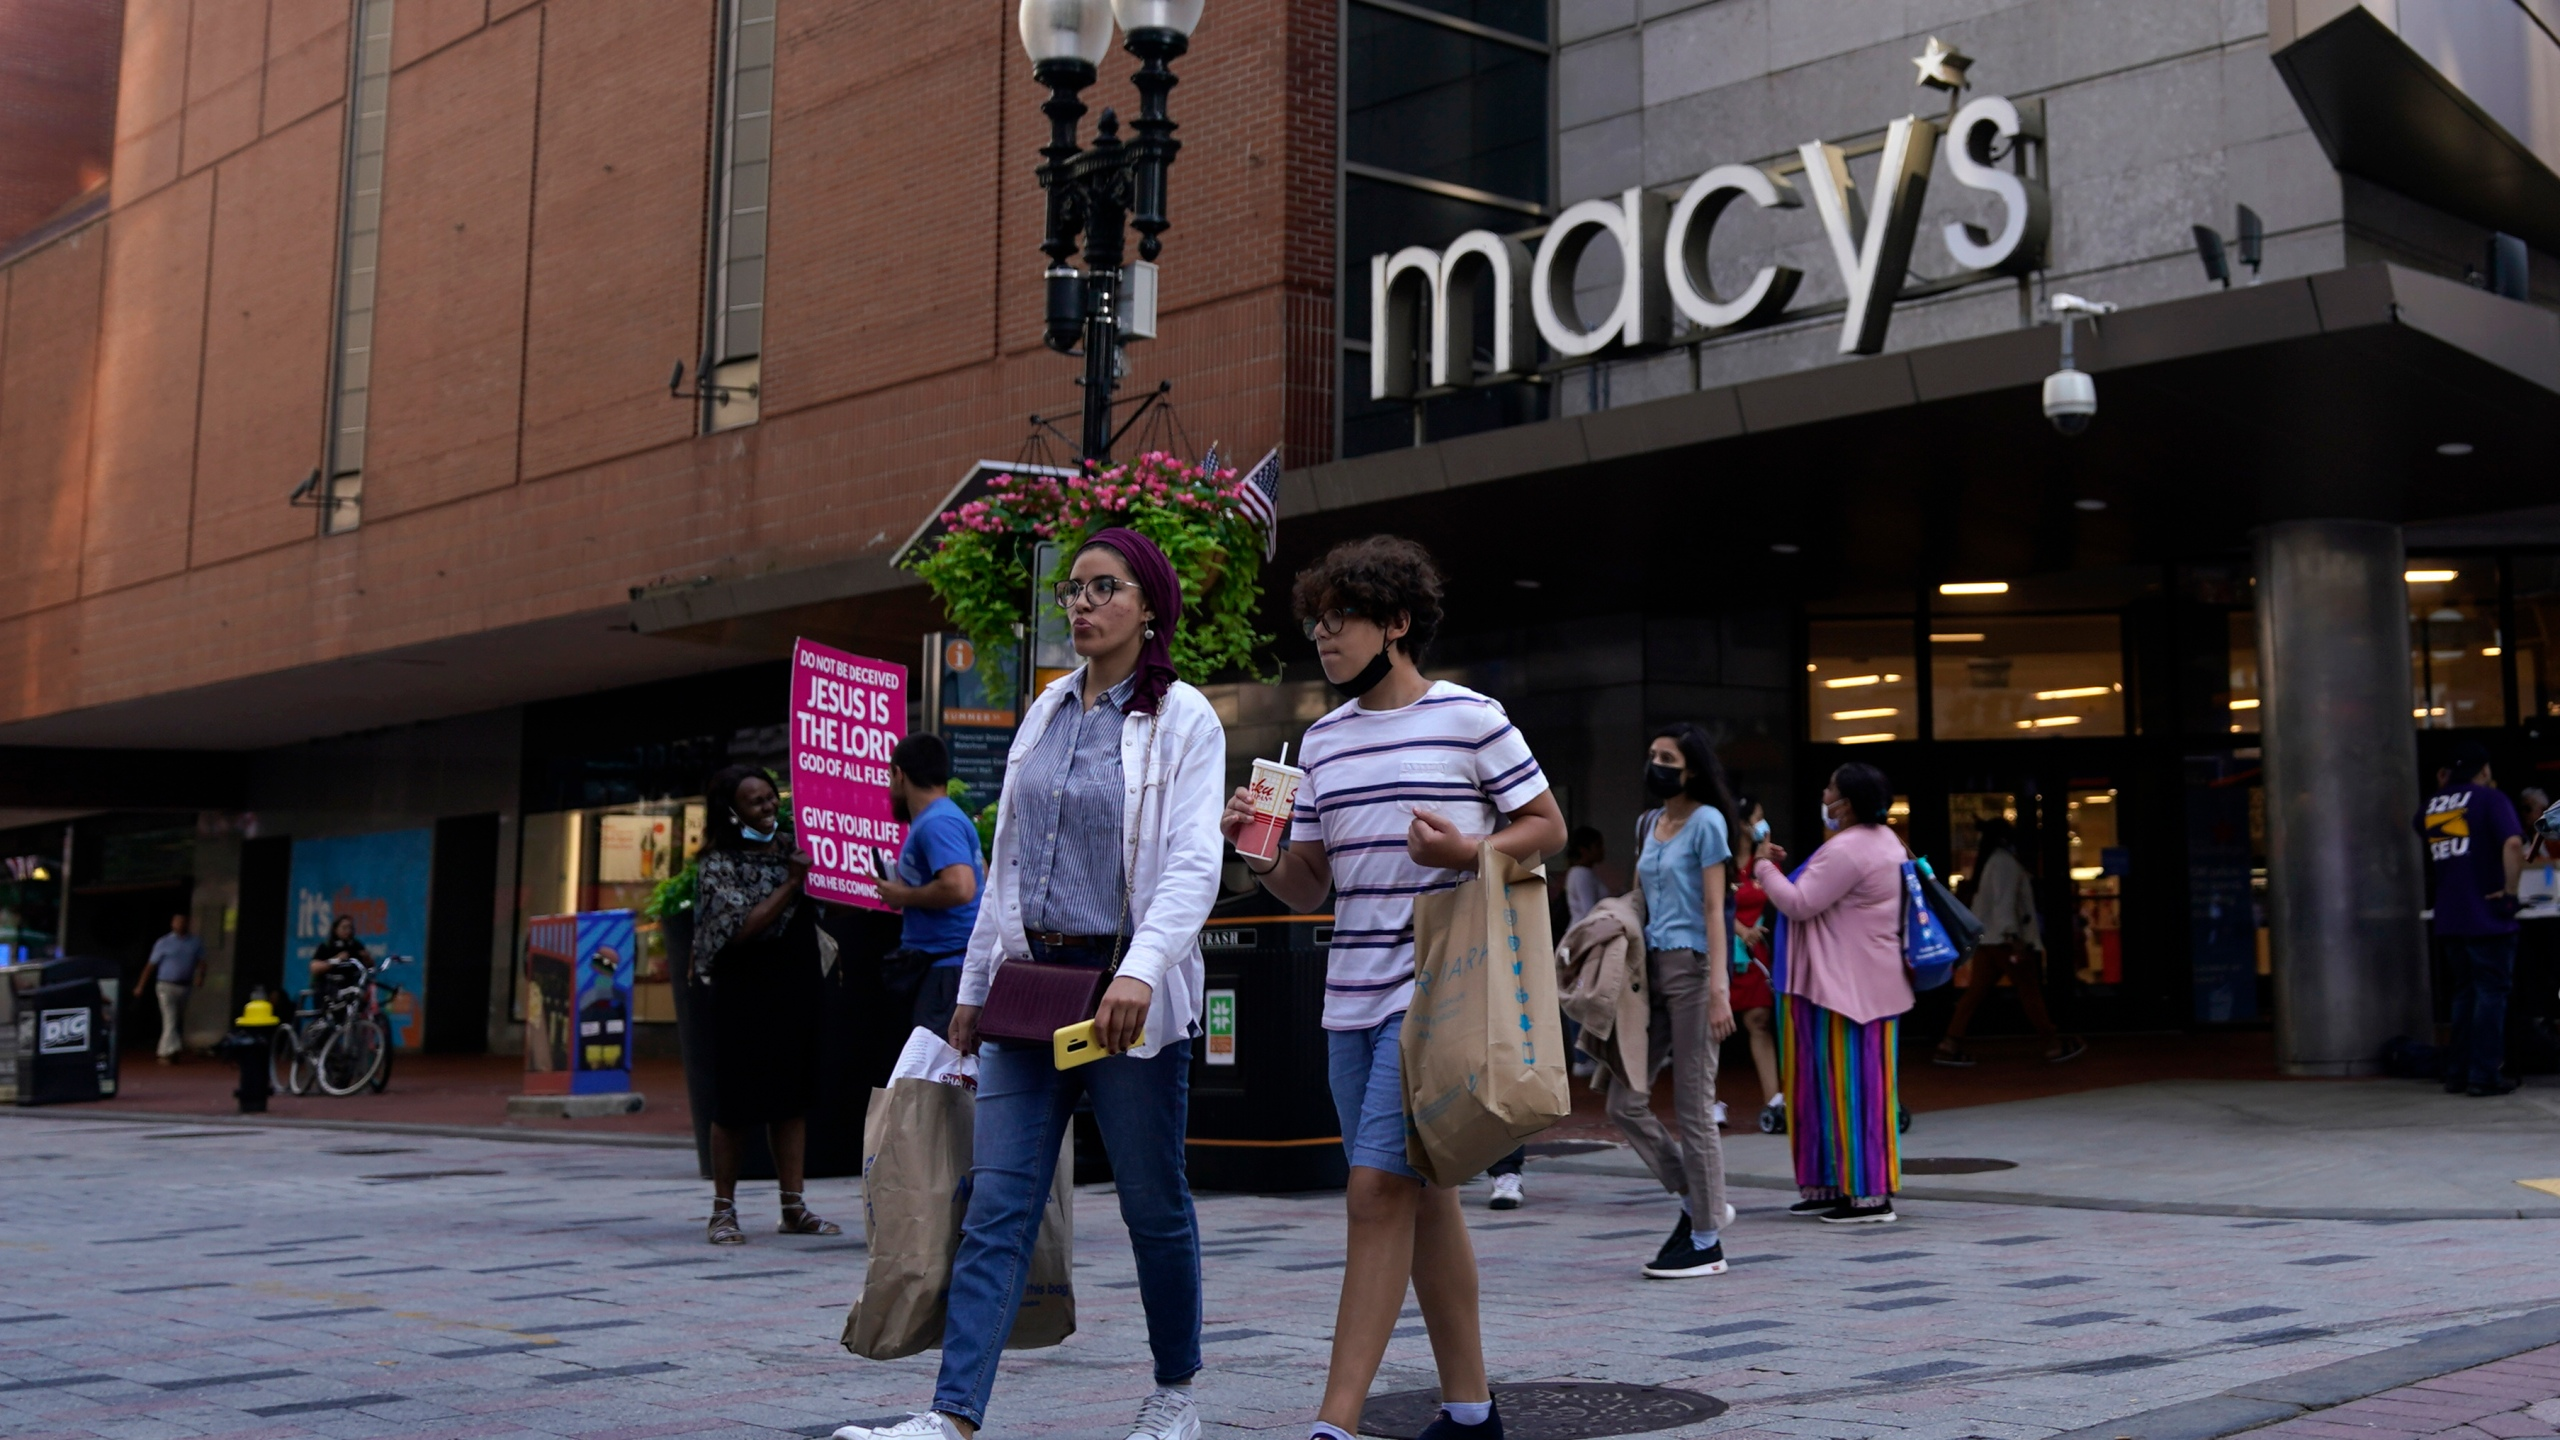 In this July 14, 2021 file photo, pedestrians pass the Macy's store in the Downtown Crossing shopping area, in Boston. (AP Photo/Charles Krupa, File)